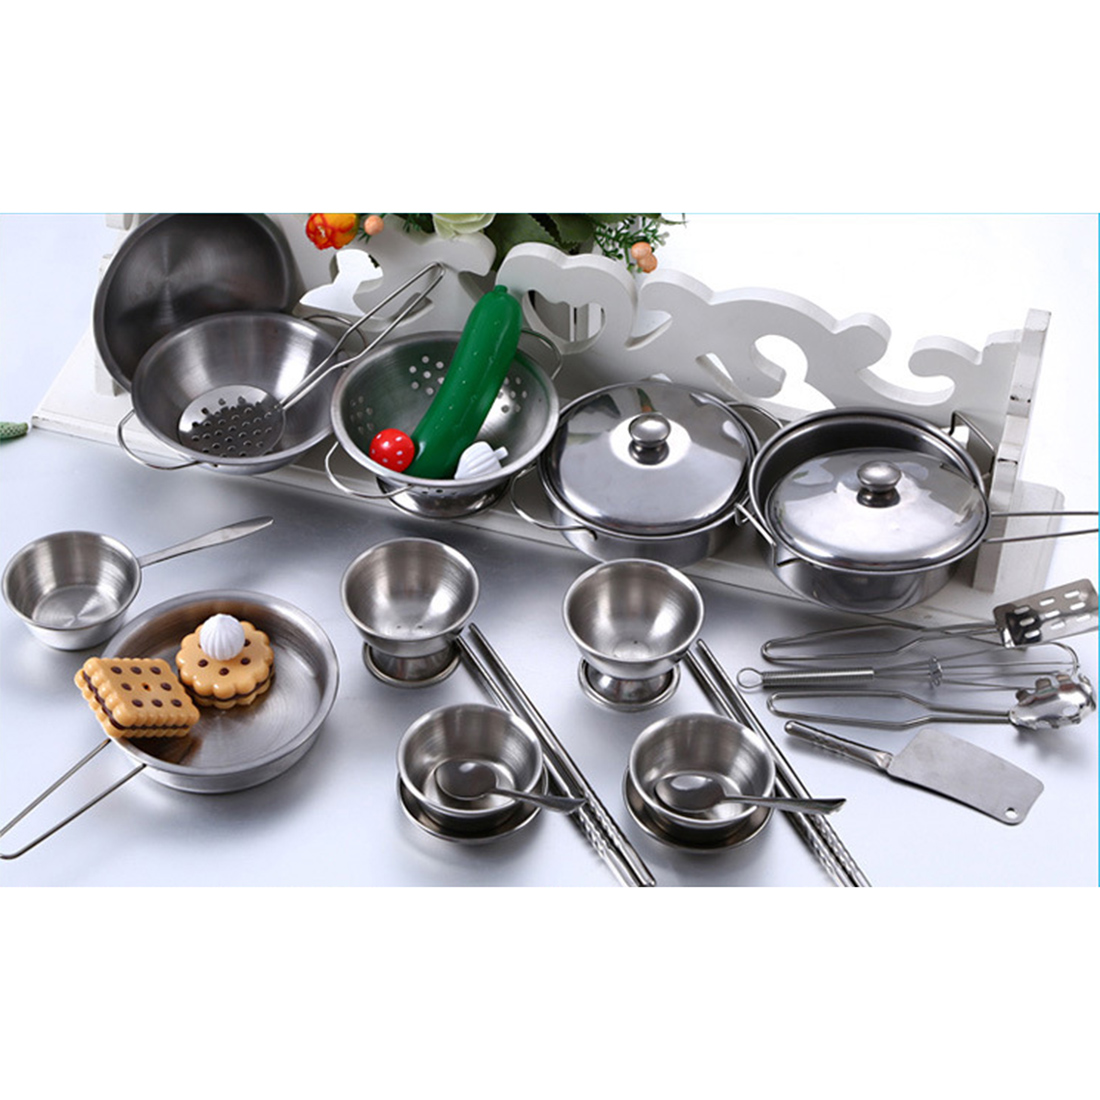 Silver Gifts Toys For Children Large Assortment Stainless Steel Kids House Kitchen Toy Cooking Cookware Children Pretend Play Kitchen Playset Kitchen Toys